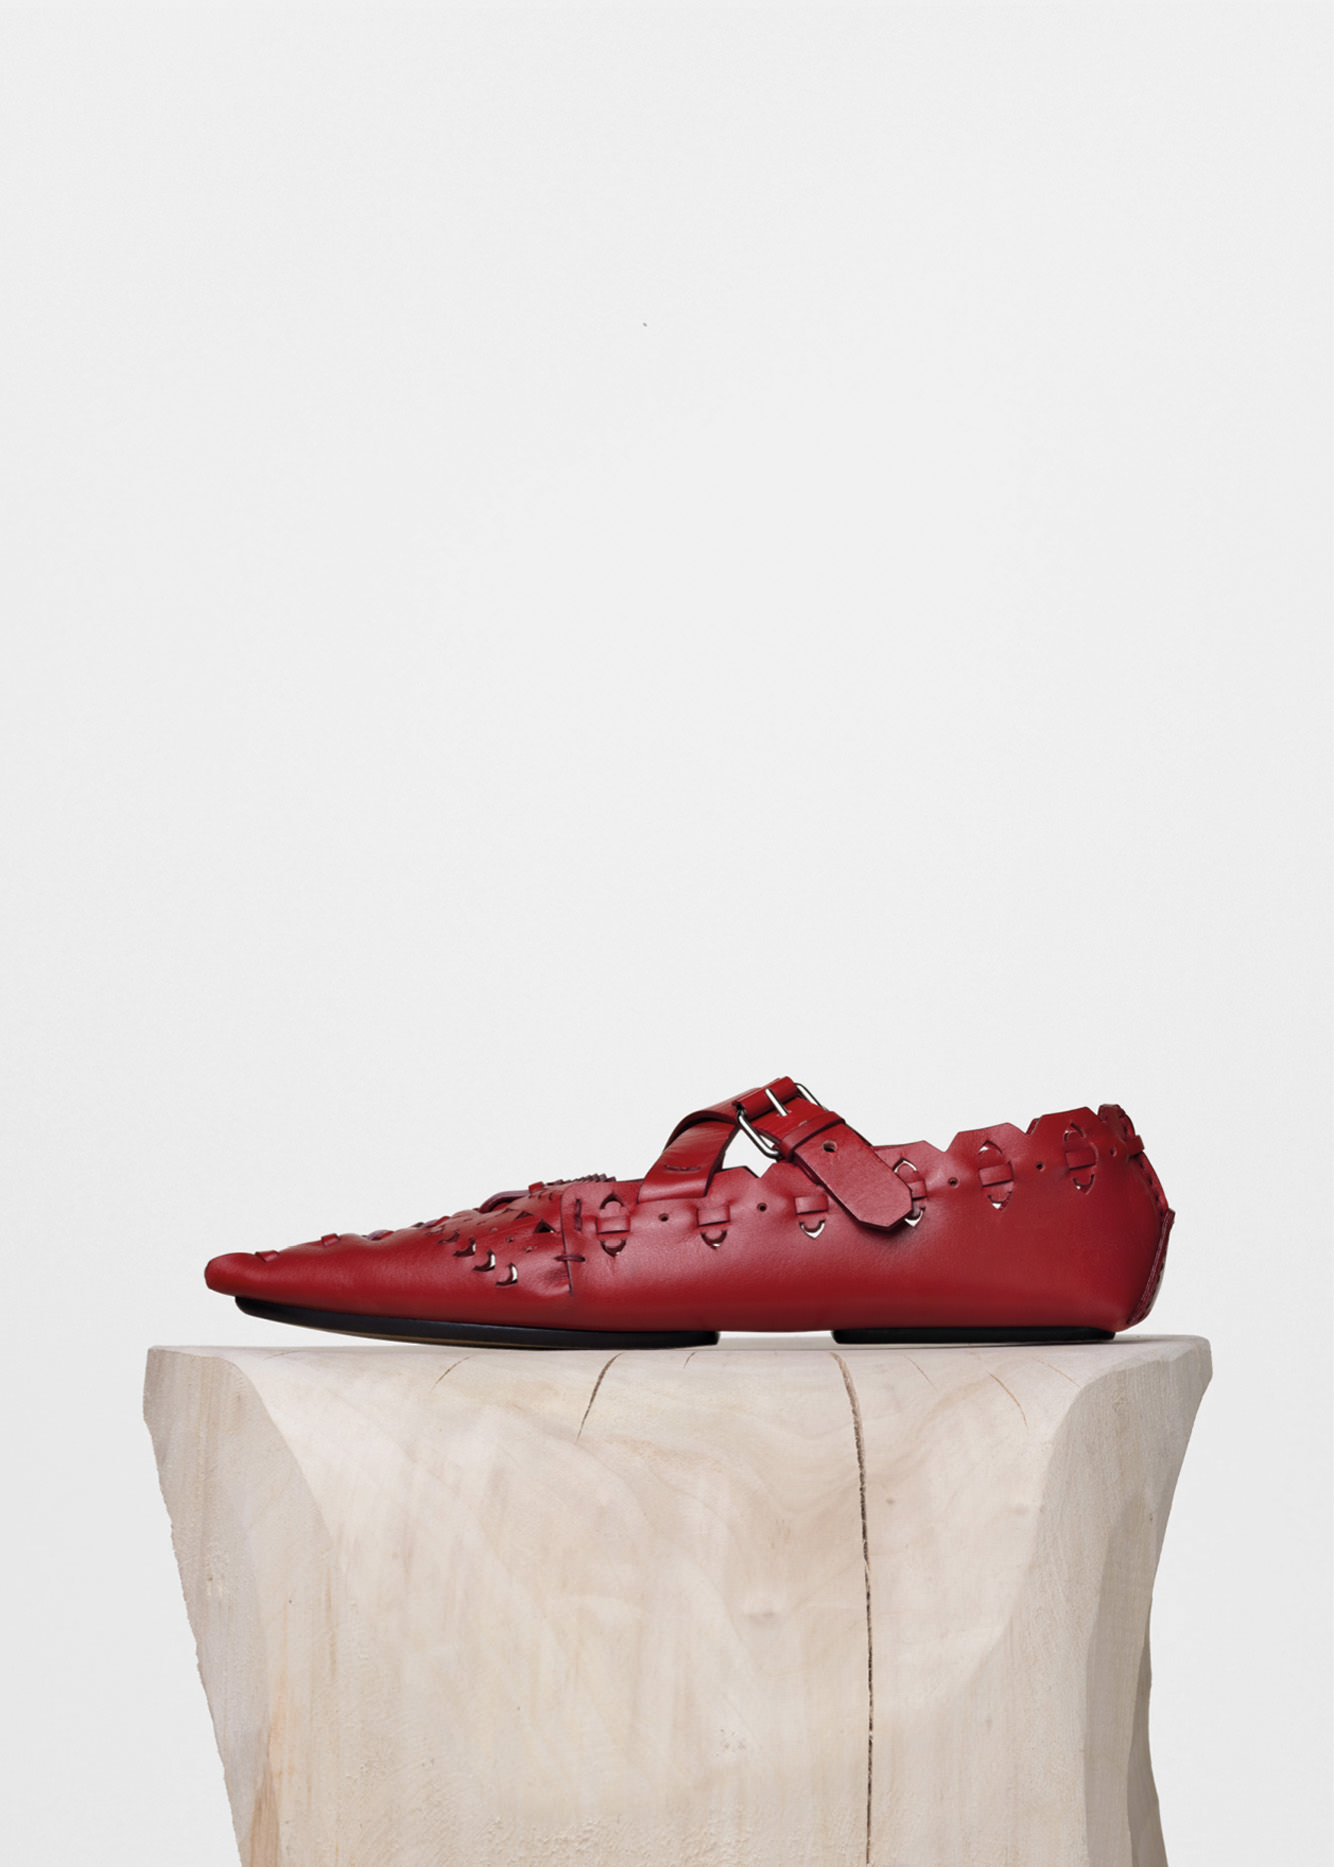 Leather shoe, CÉLINE.       Selection by Rebecca Bleynie